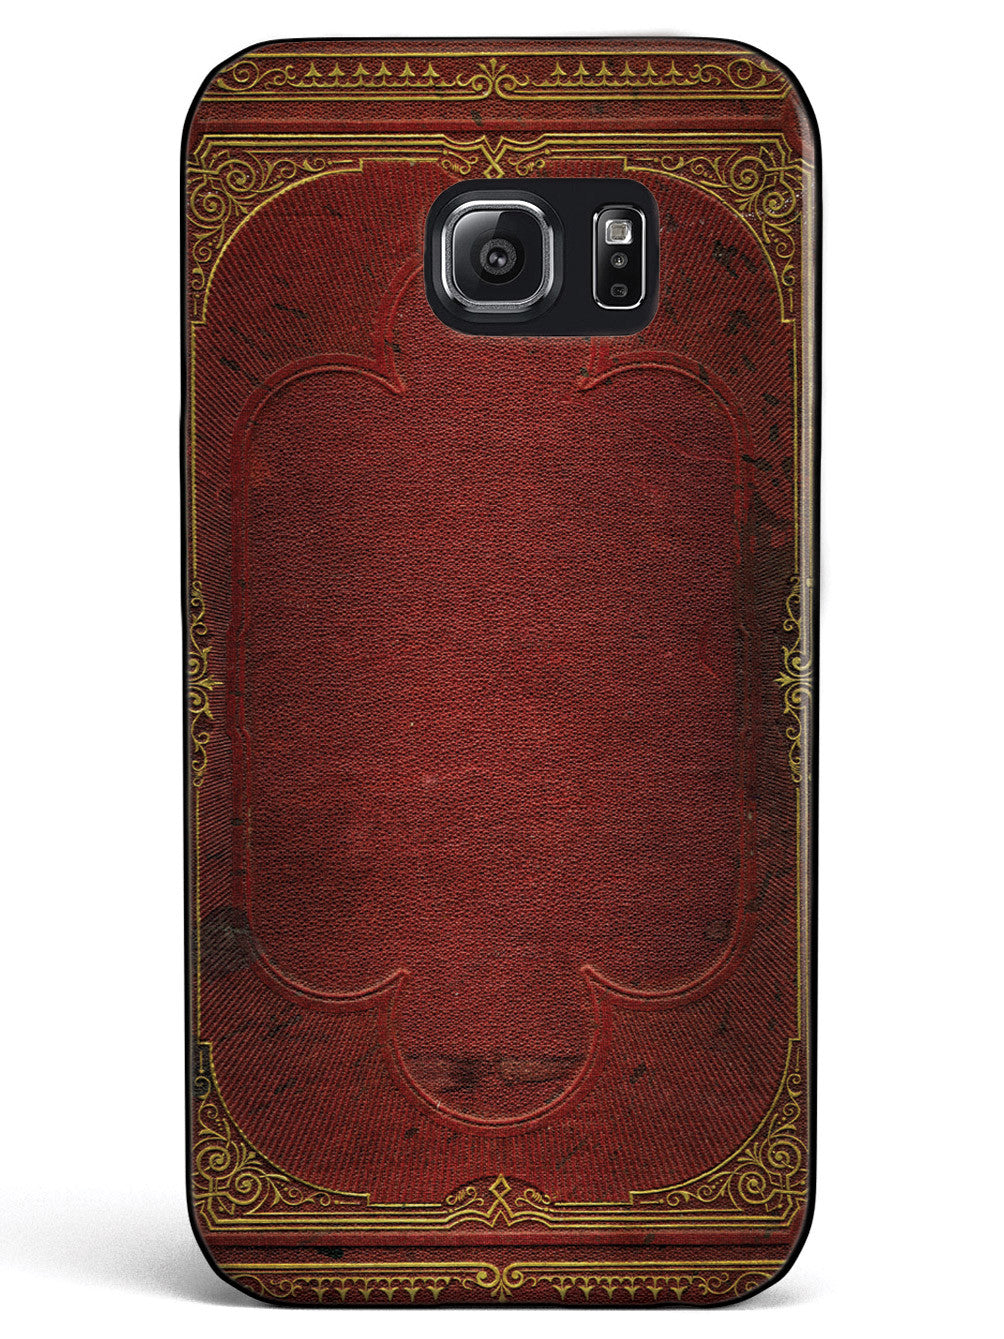 Ancient Book Cover - Red and Gold - Black Case